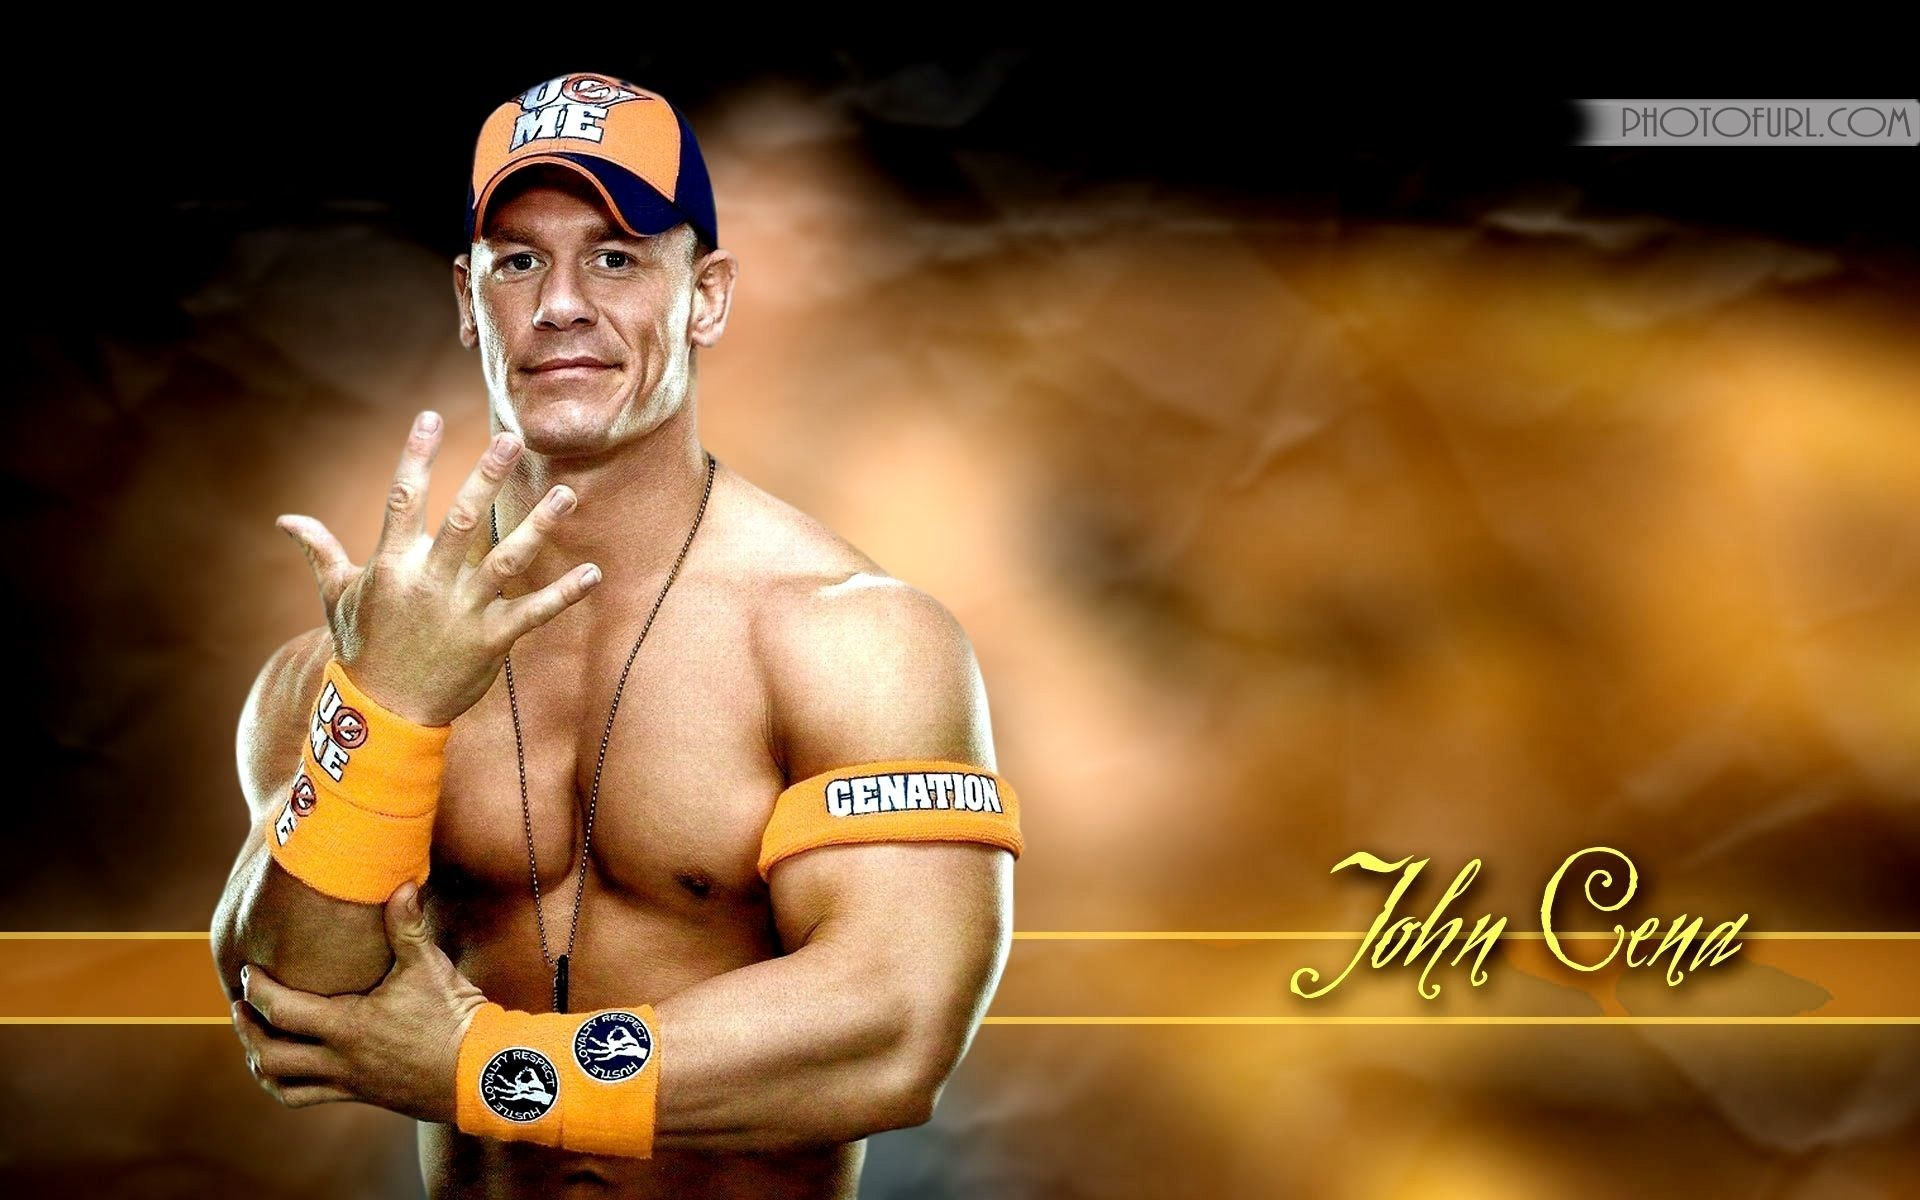 1920x1200  WWE Superstar John Cena Wallpaper HD Pictures One HD Wallpaper  1920×1200 Pics Of